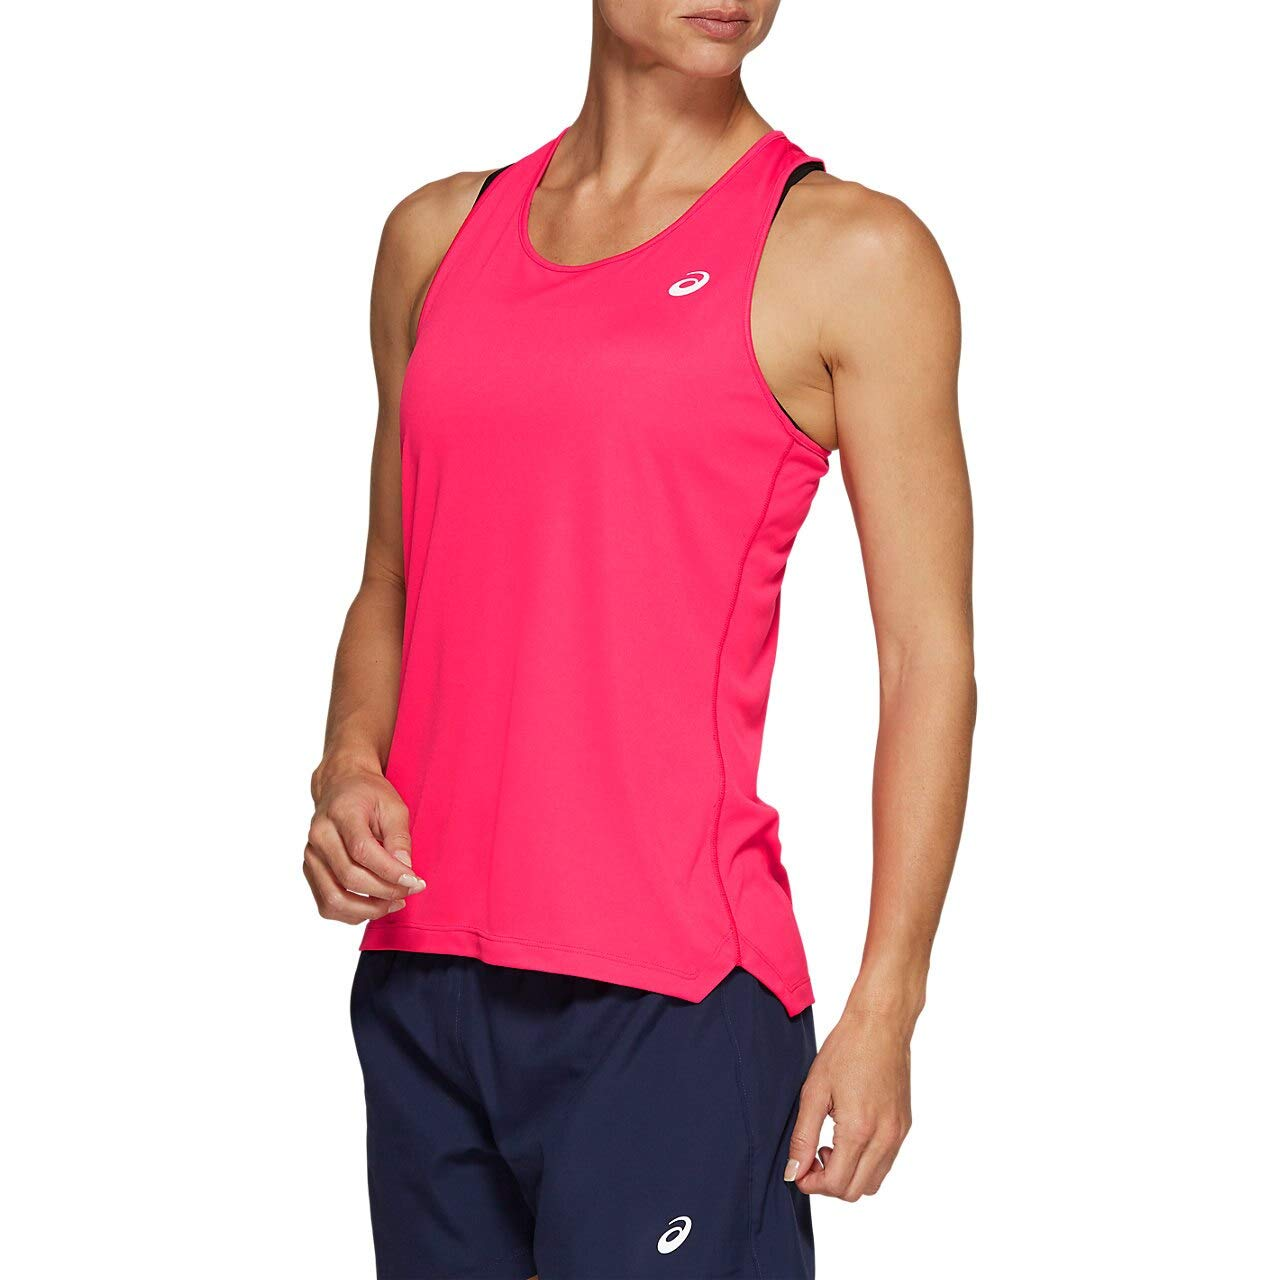 ASICS Women's Run Silver Tank Top Pixel Pink Medium by ASICS